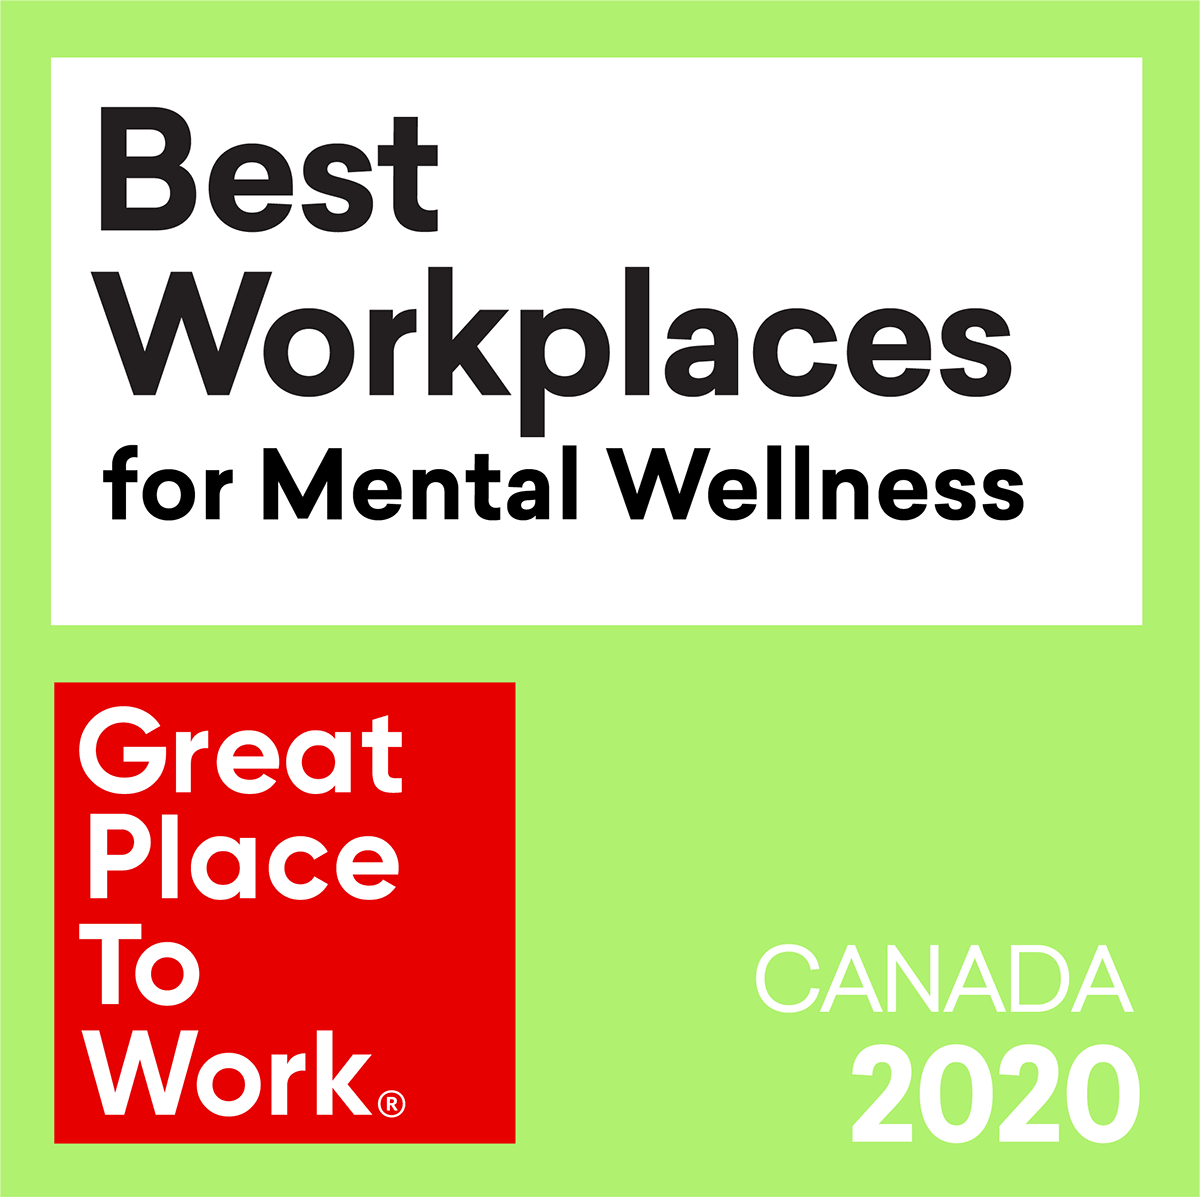 Great Place To Work 2020: Mental Wellness